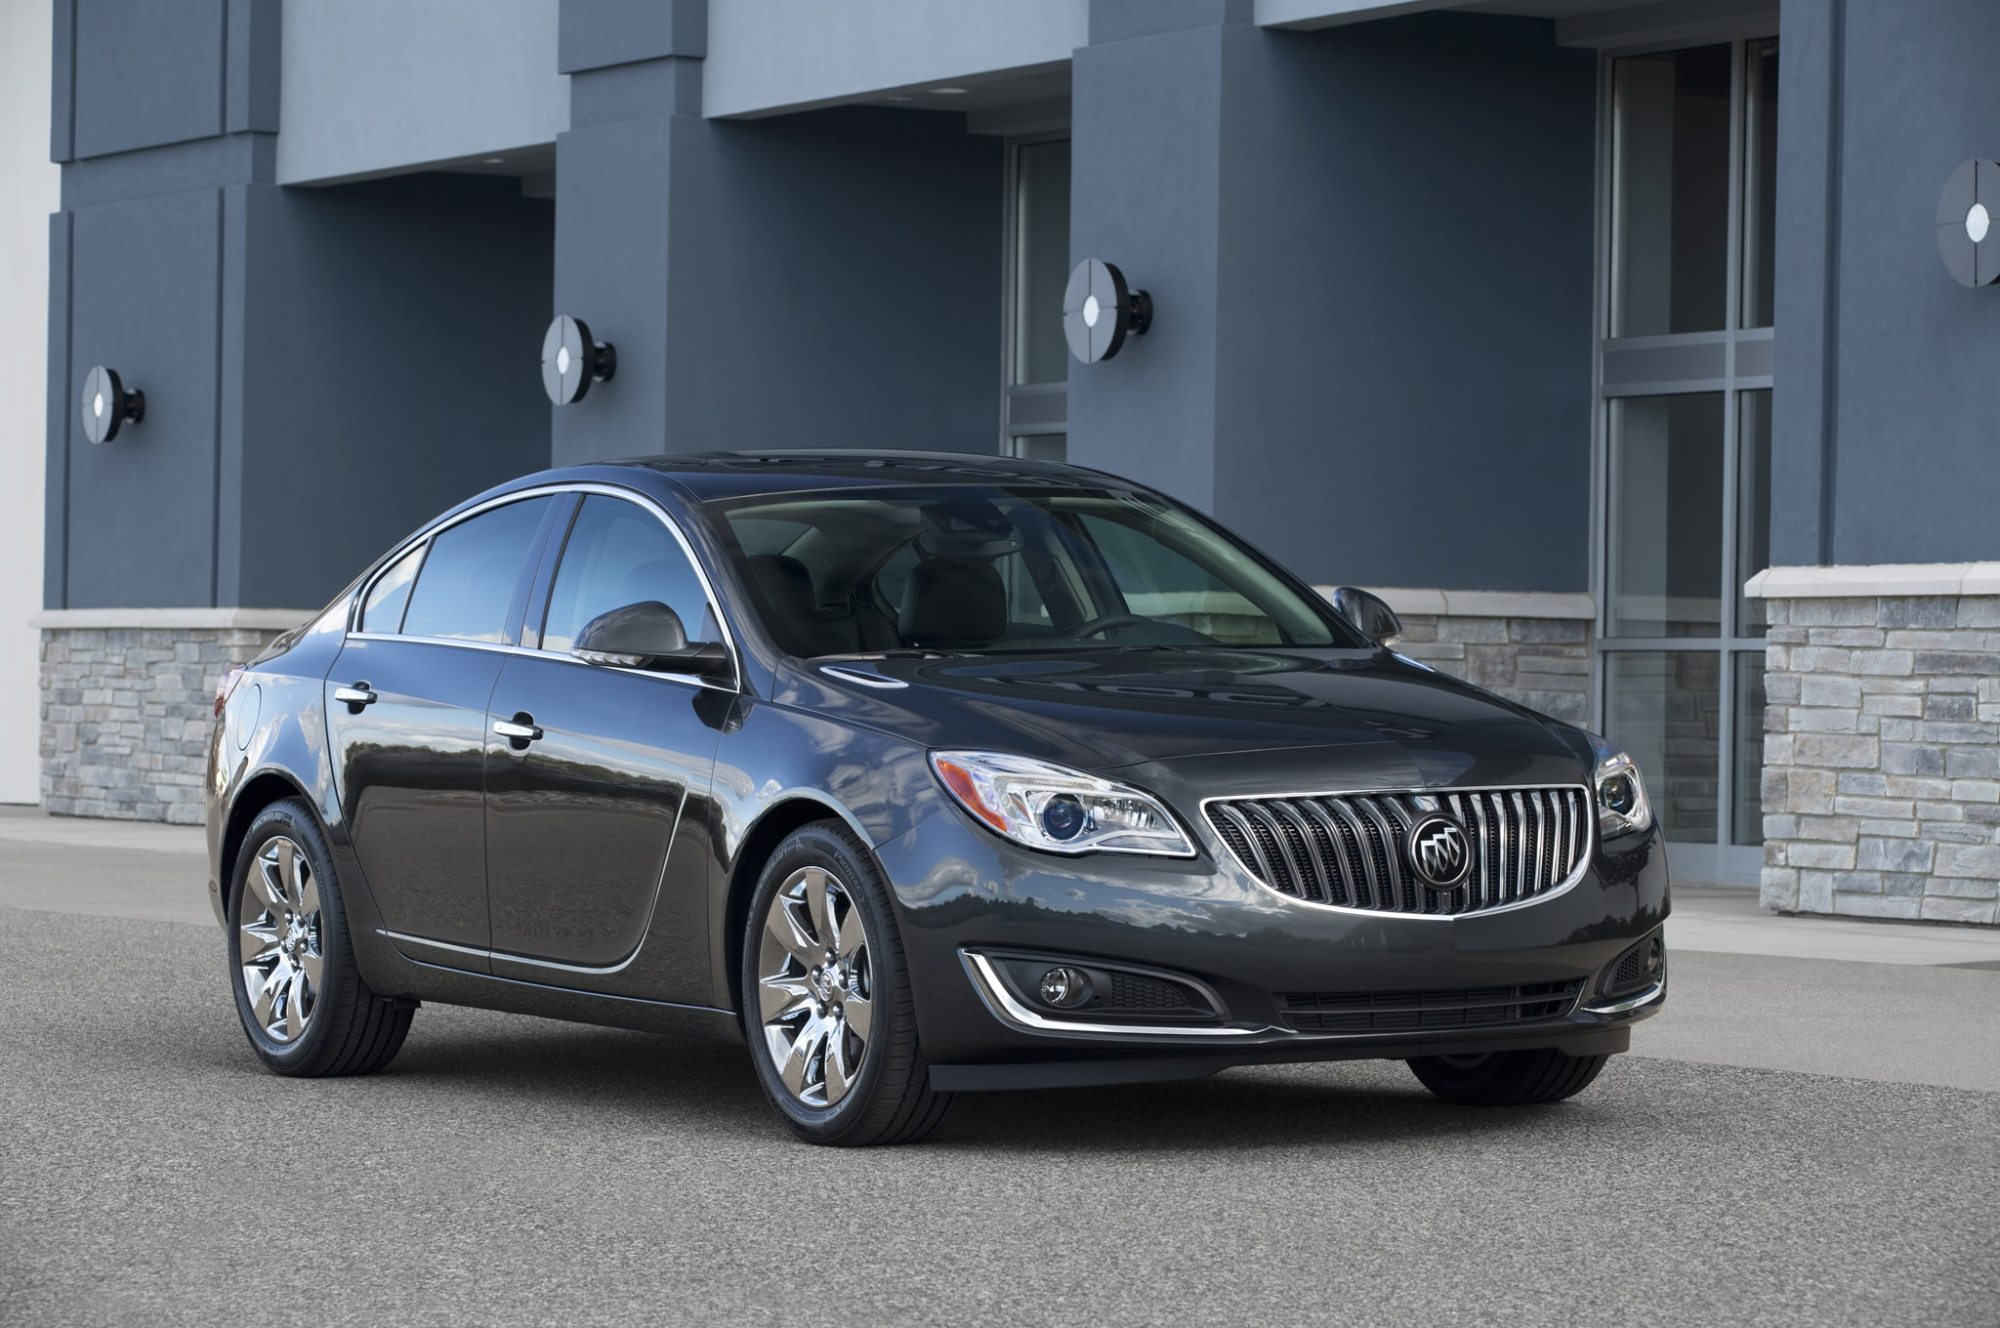 hight resolution of 2014 buick regal